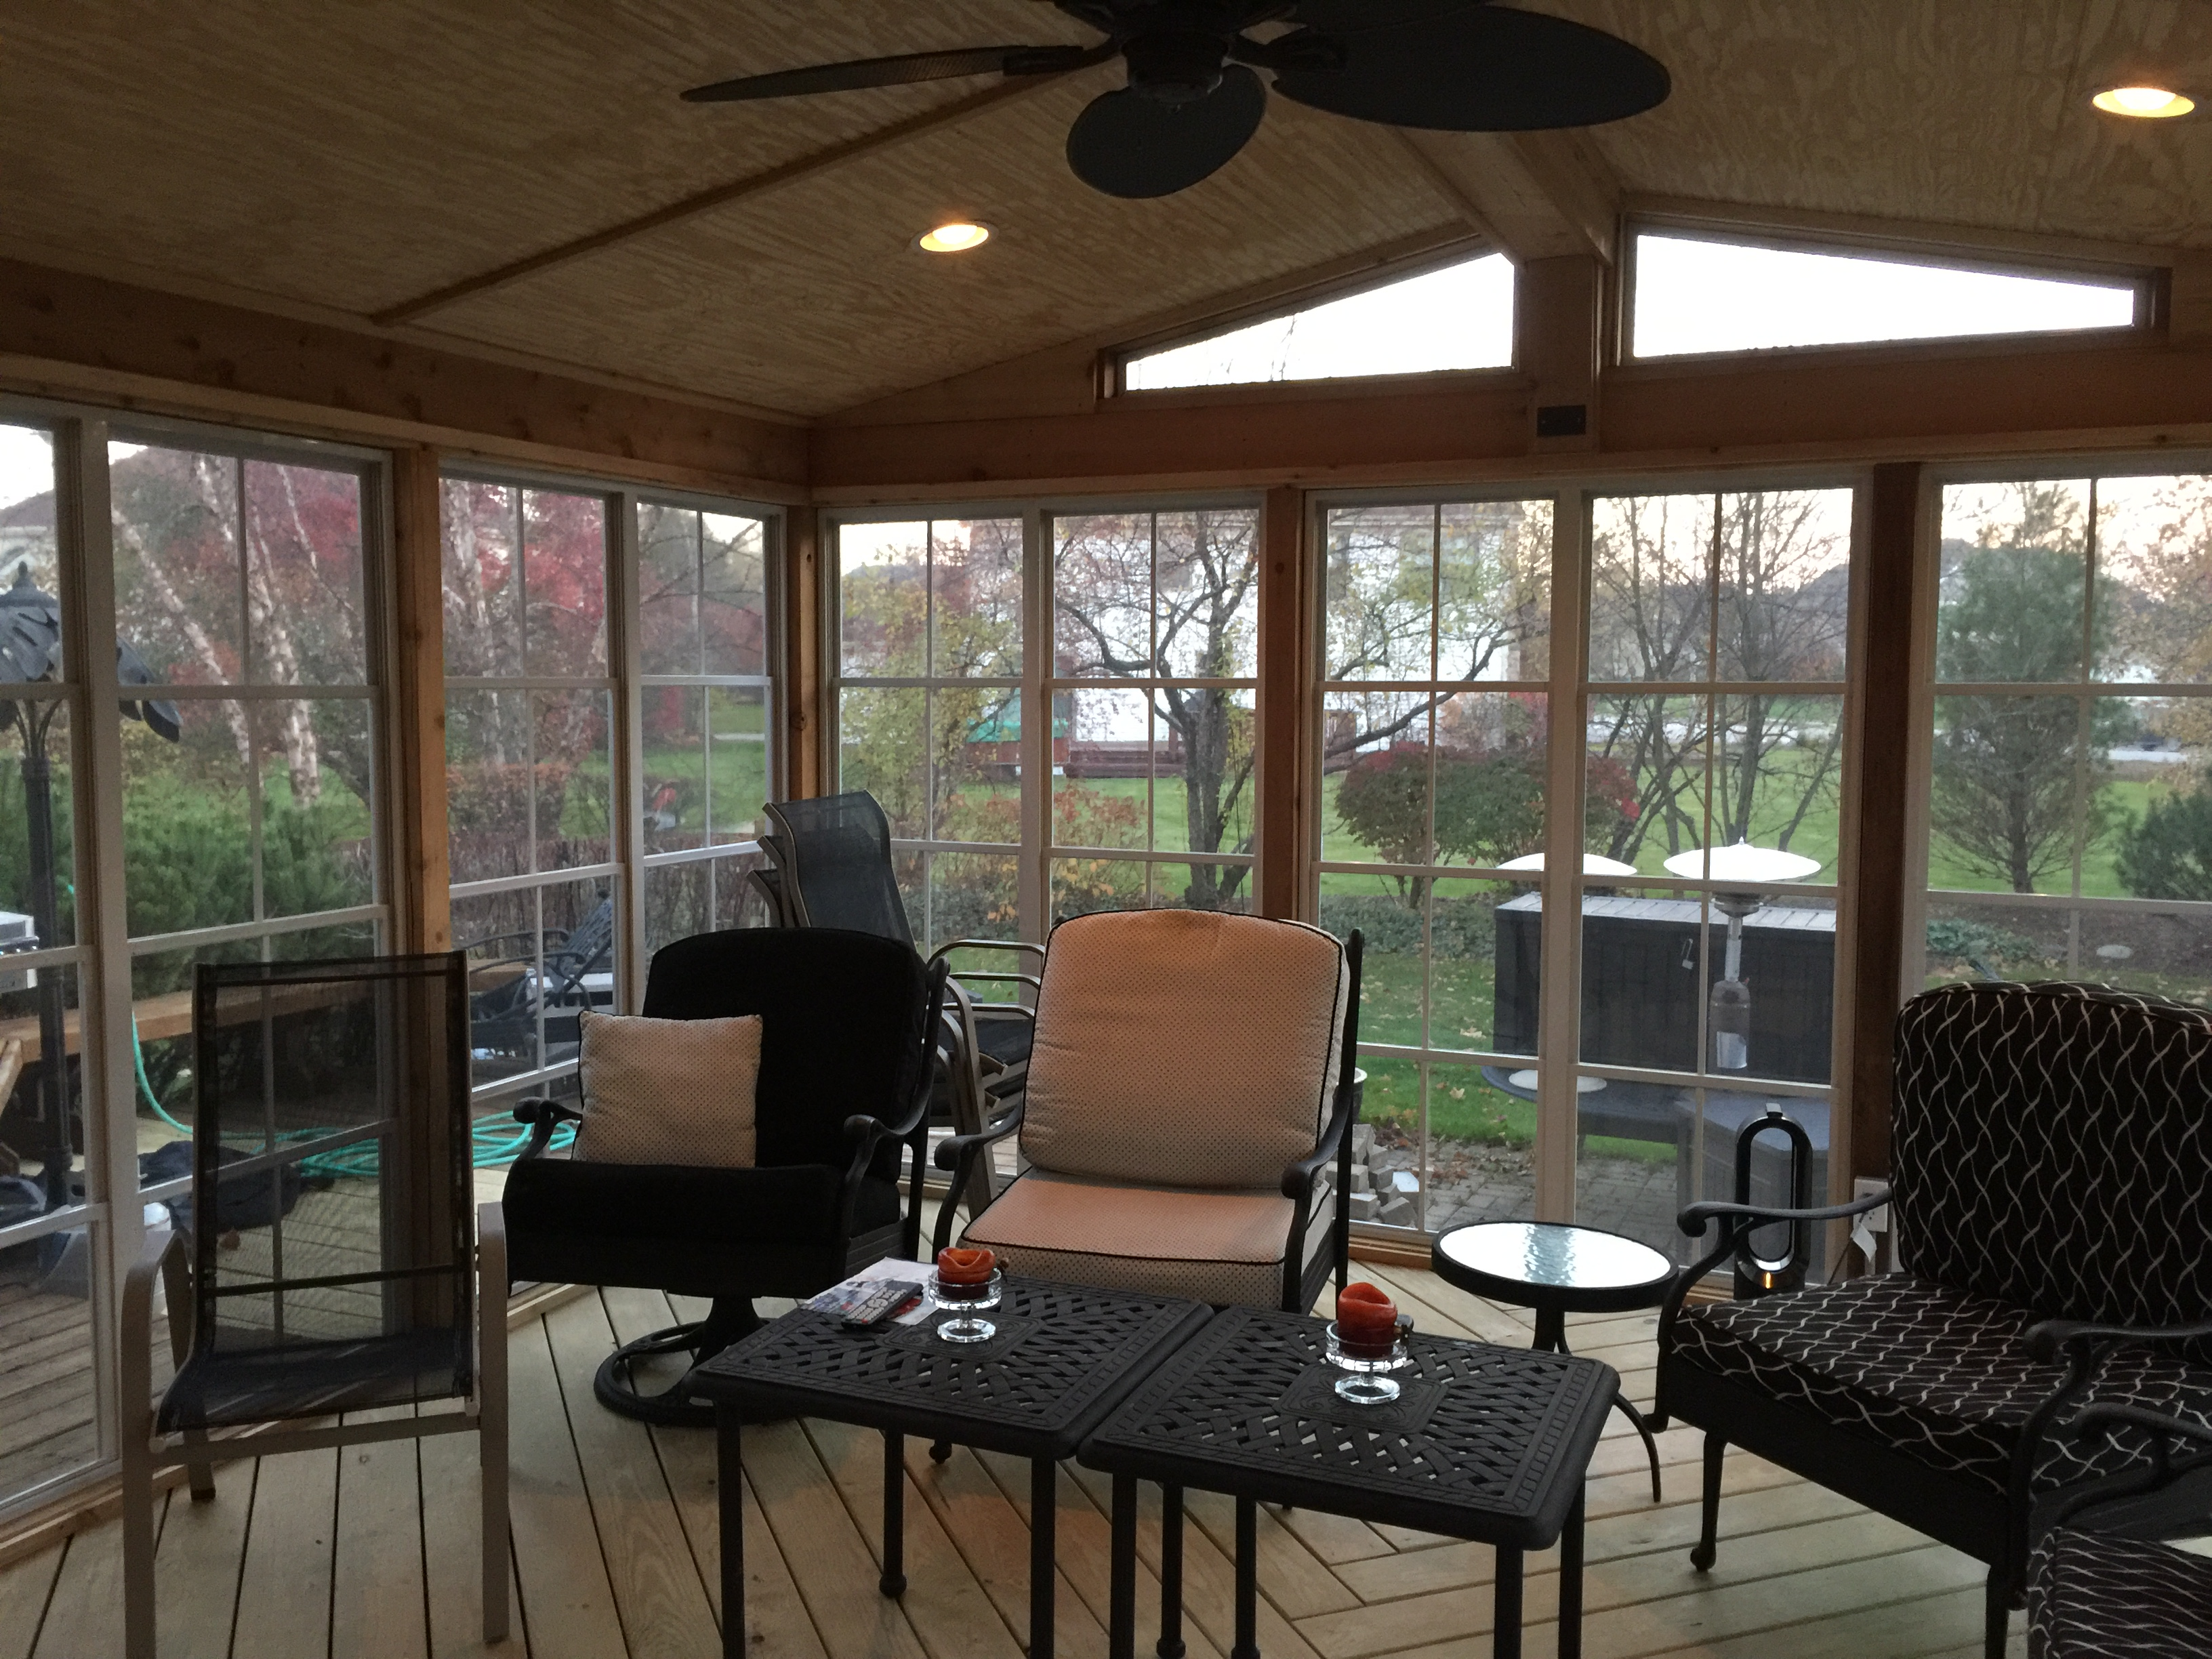 Archadeck s Custom Designed Screen porch with decks and paver patio